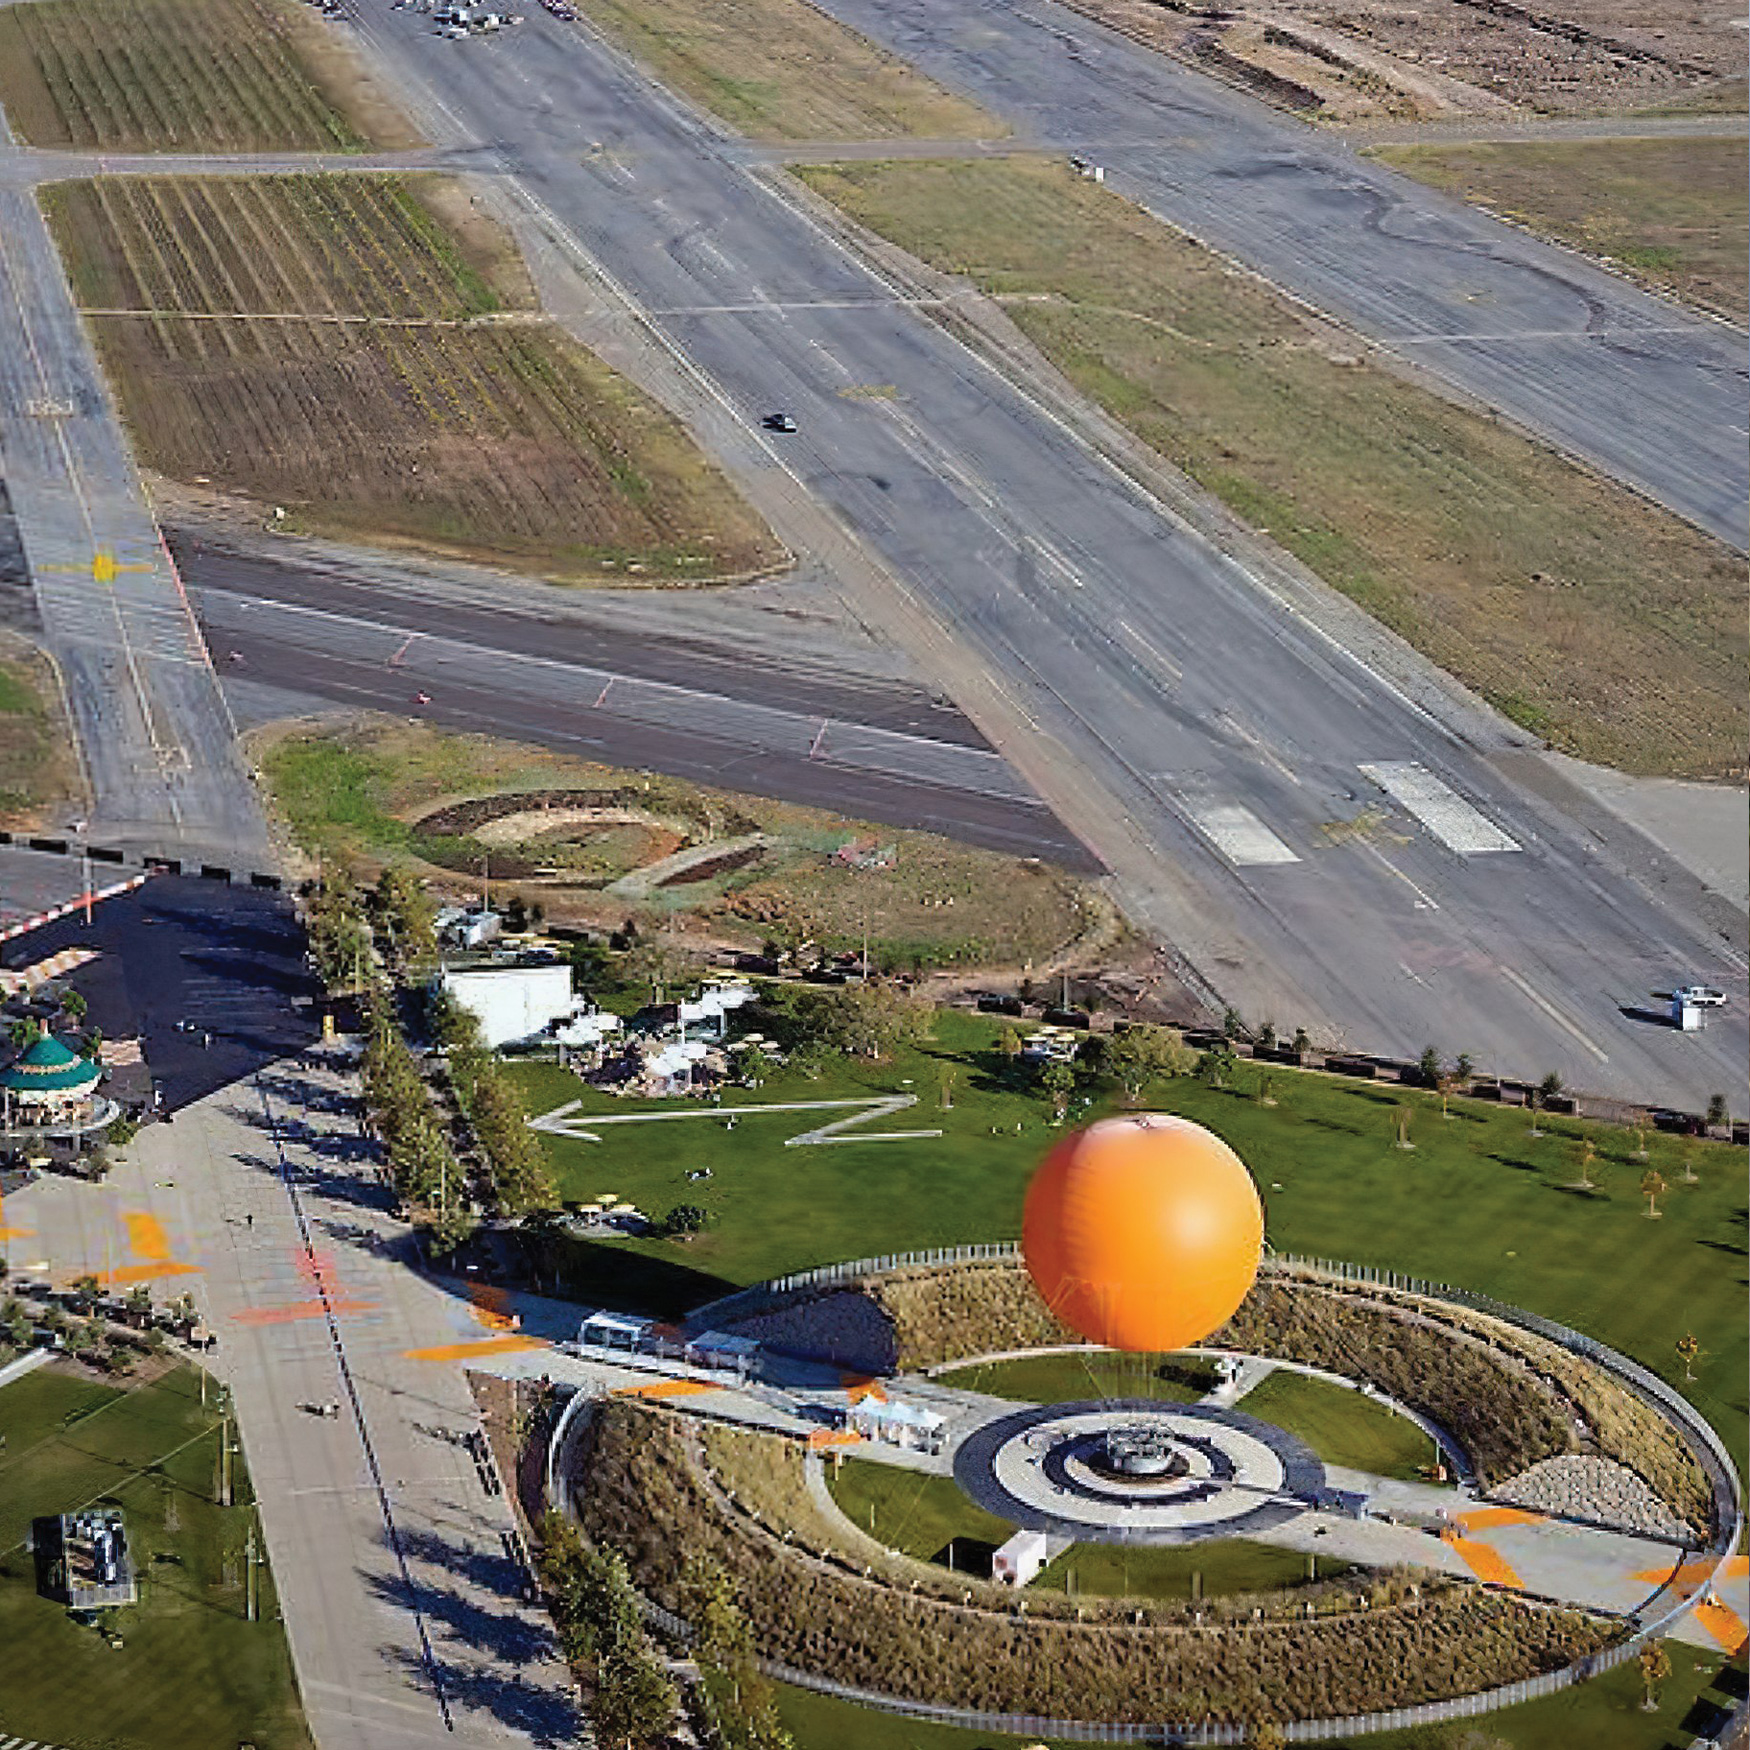 Aerial Shot of Great Parks and Runway with Orange Hot Air Balloon.